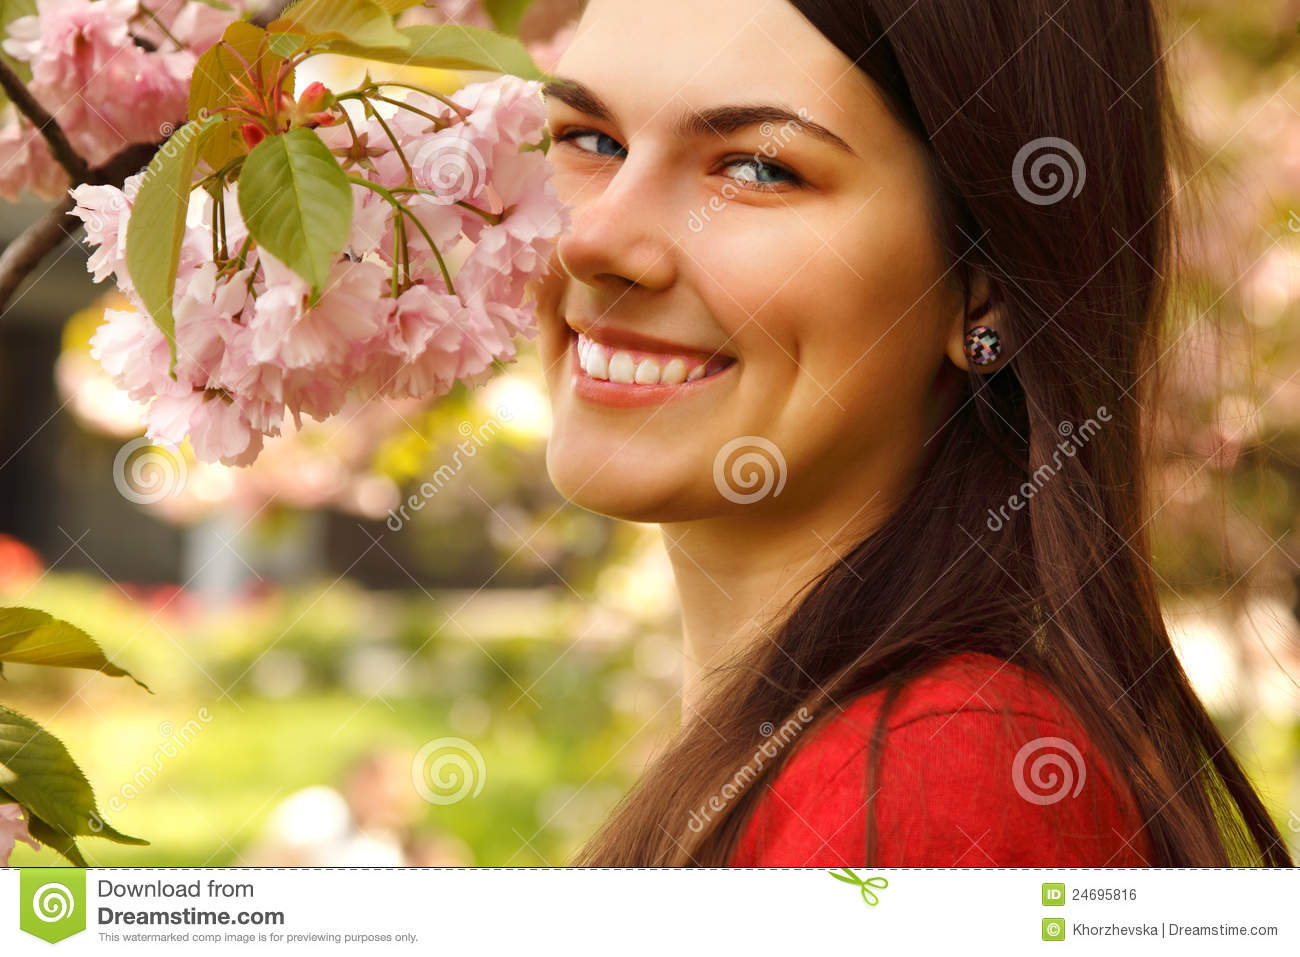 Teen girl charming happy smiling in garden royalty free stock image image 24695816 - Charming teenage girls image ...